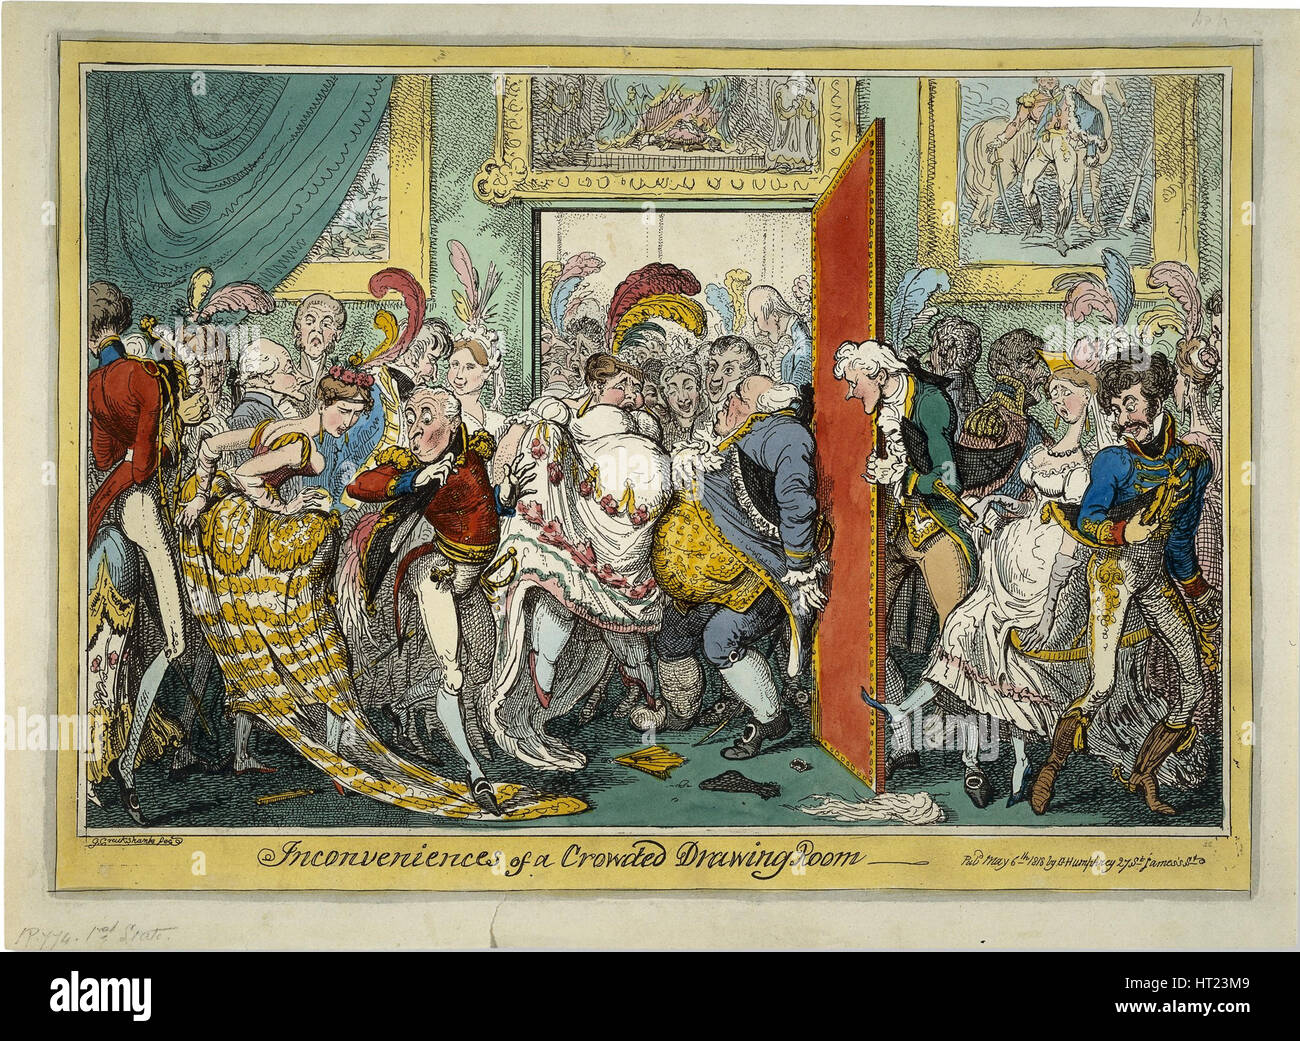 The Inconveniences of a Crowded Drawing Room, 1818. Artist: Cruikshank, George (1792-1878) - Stock Image